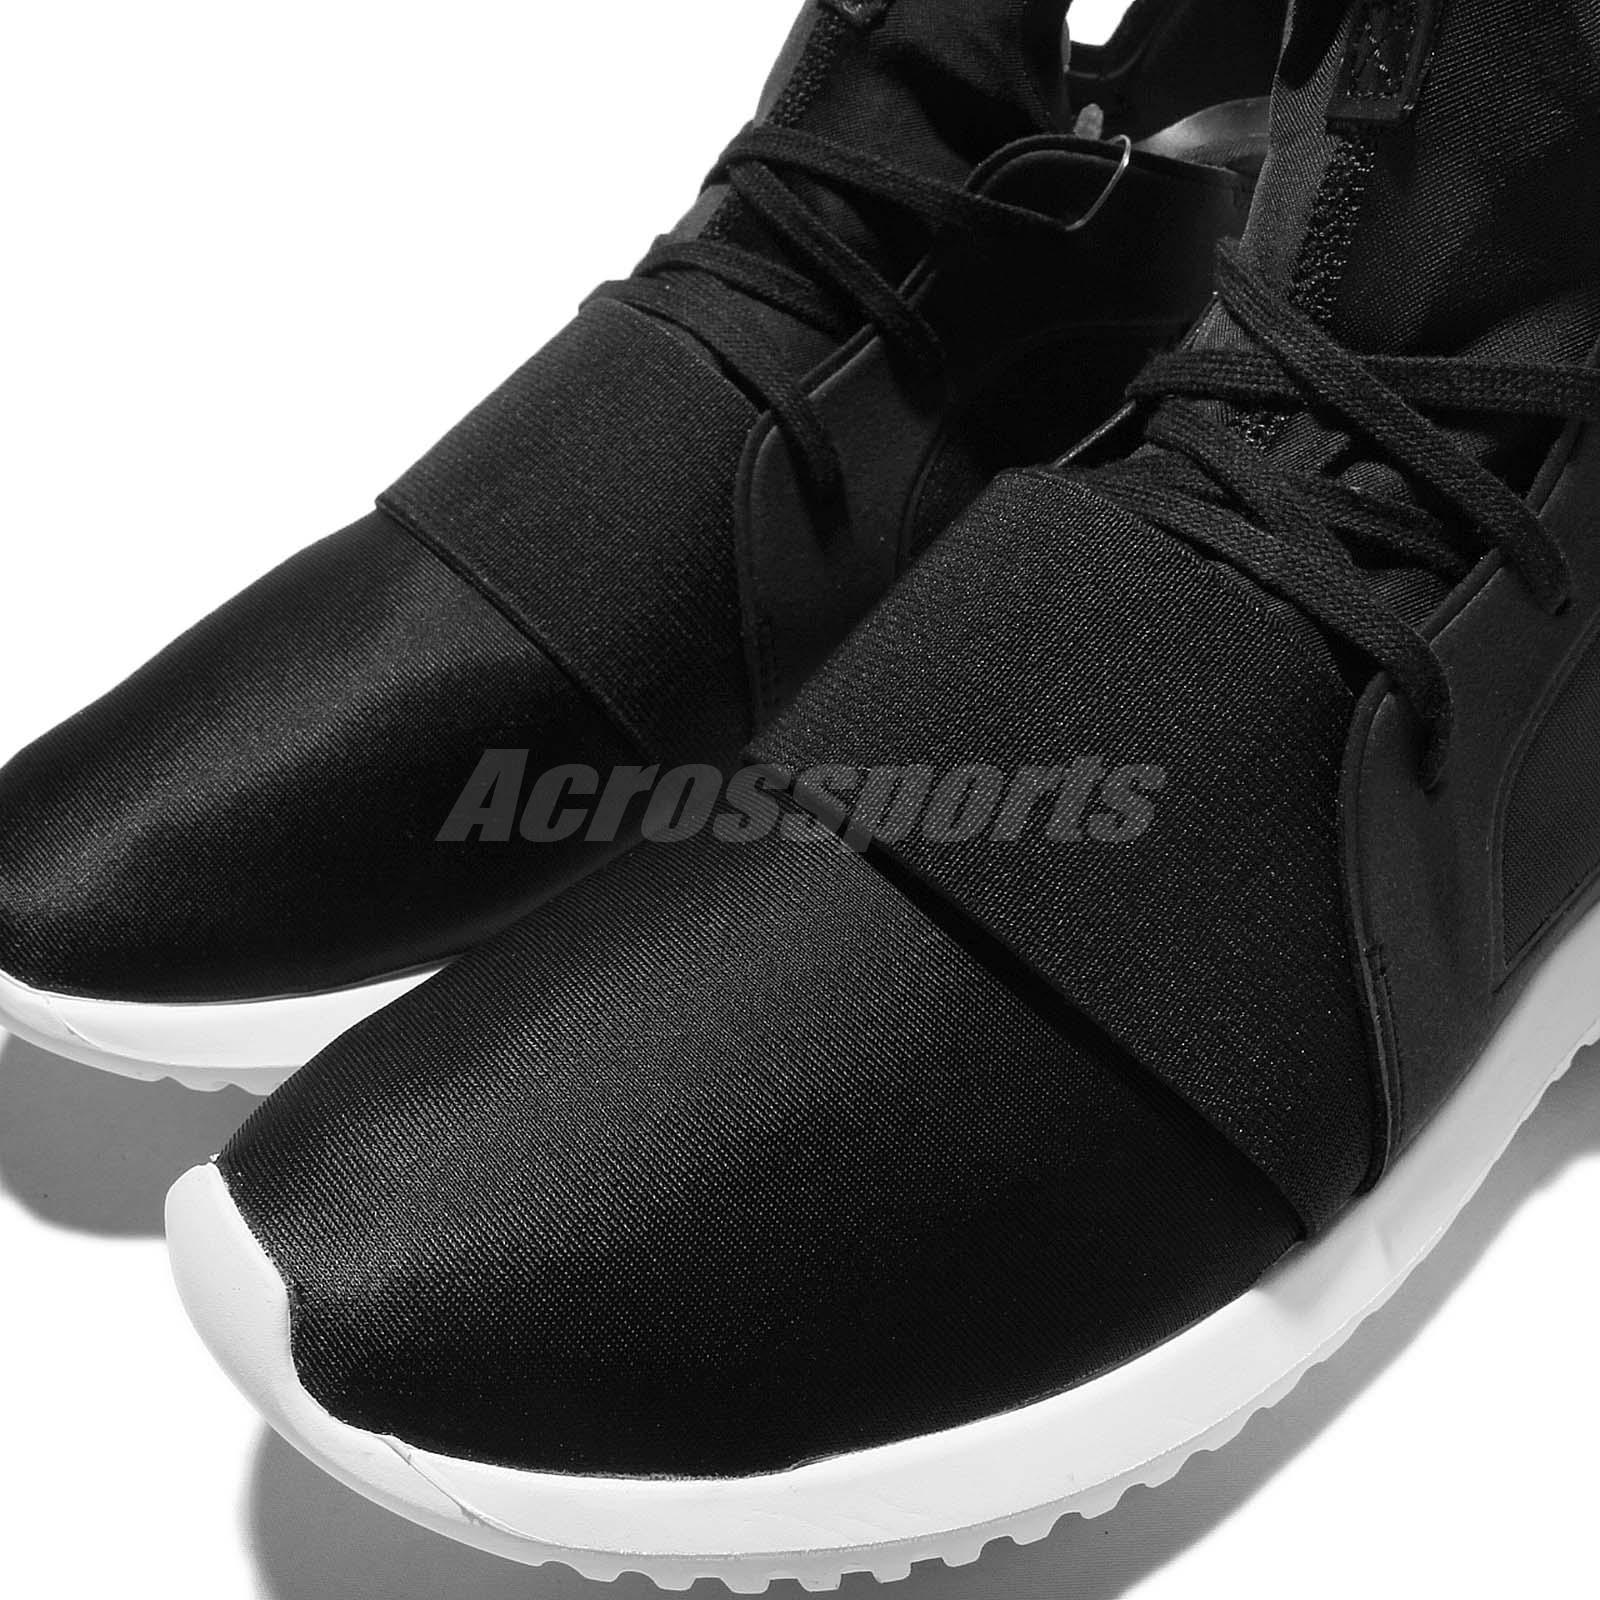 buy popular eef88 67620 Details about adidas Originals Tubular Defiant W Black White Womens  Sock-Like Shoes S75249